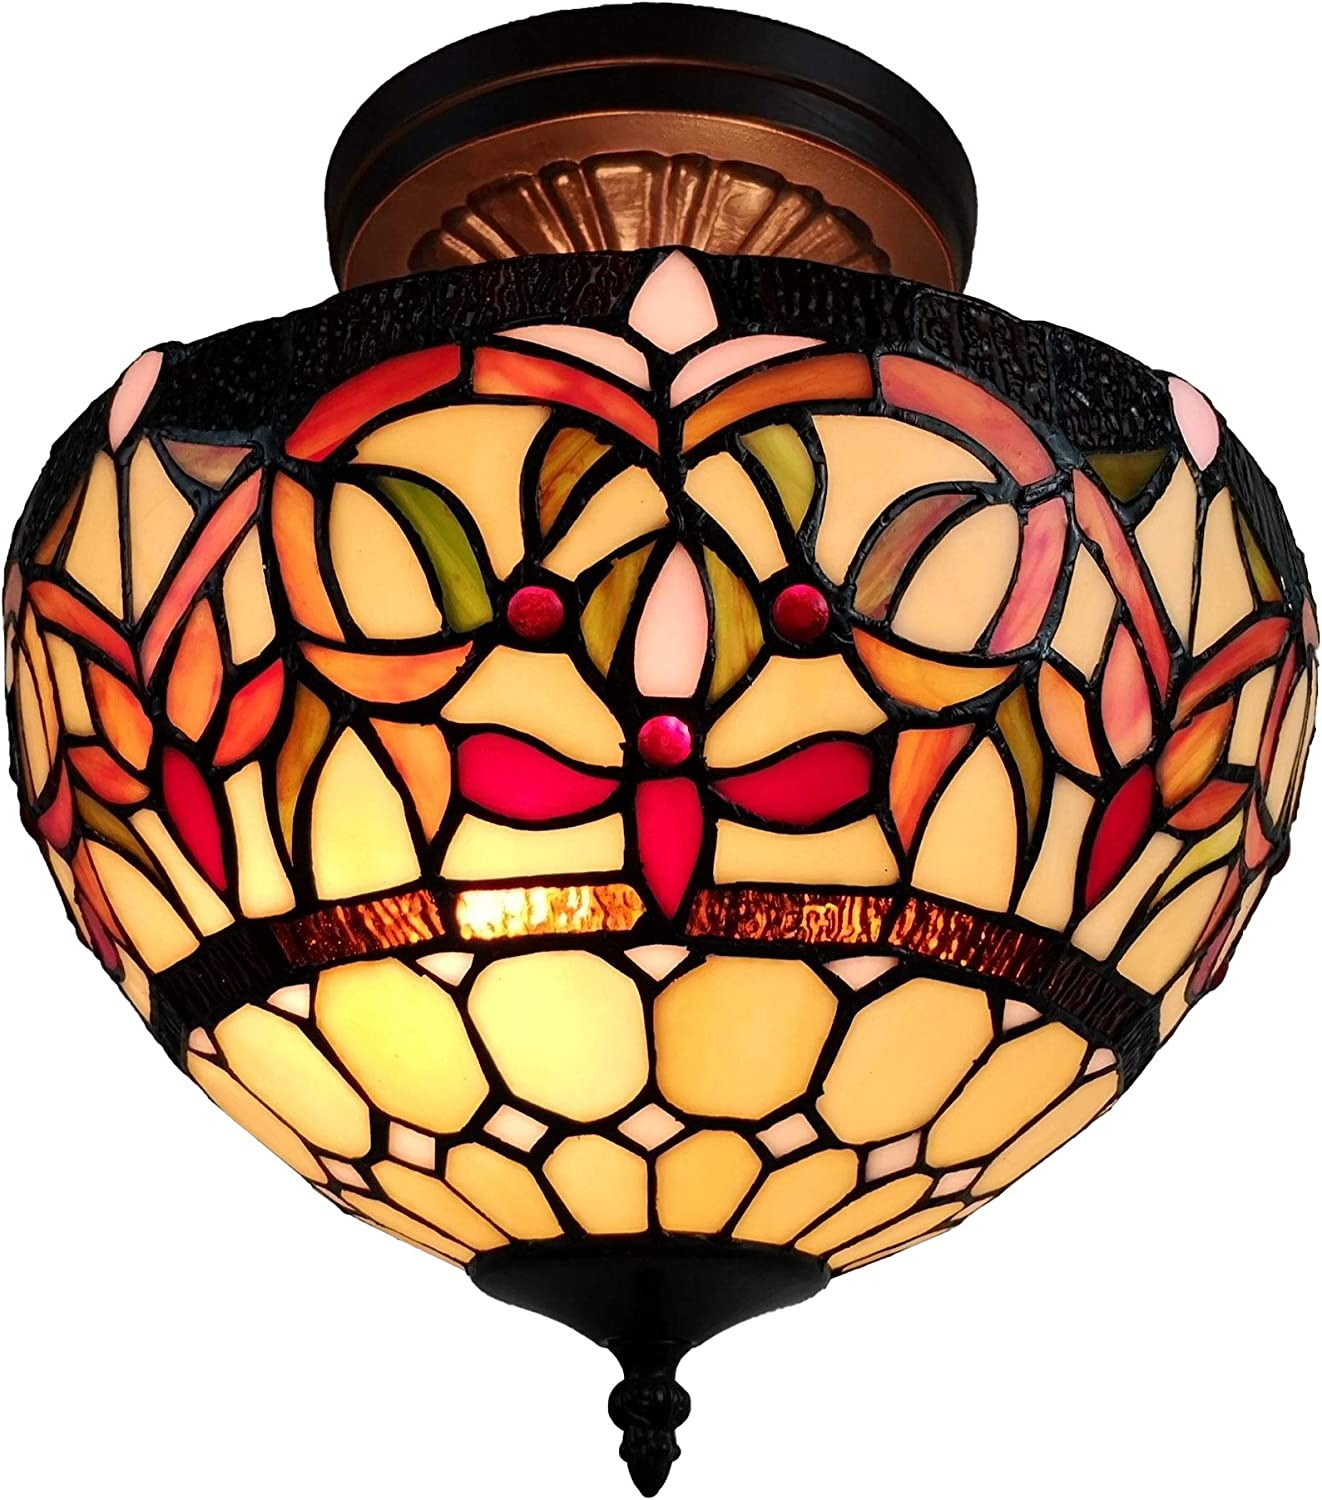 Tiffany Style Hanging Pendant Lamp Semi Flush Ceiling Fixture Shade 12 Wide Stained Glass Red Green Orange Antique Vintage 2 Light Living Dining Room Kitchen Gift AM1081HL12B Amora Lighting